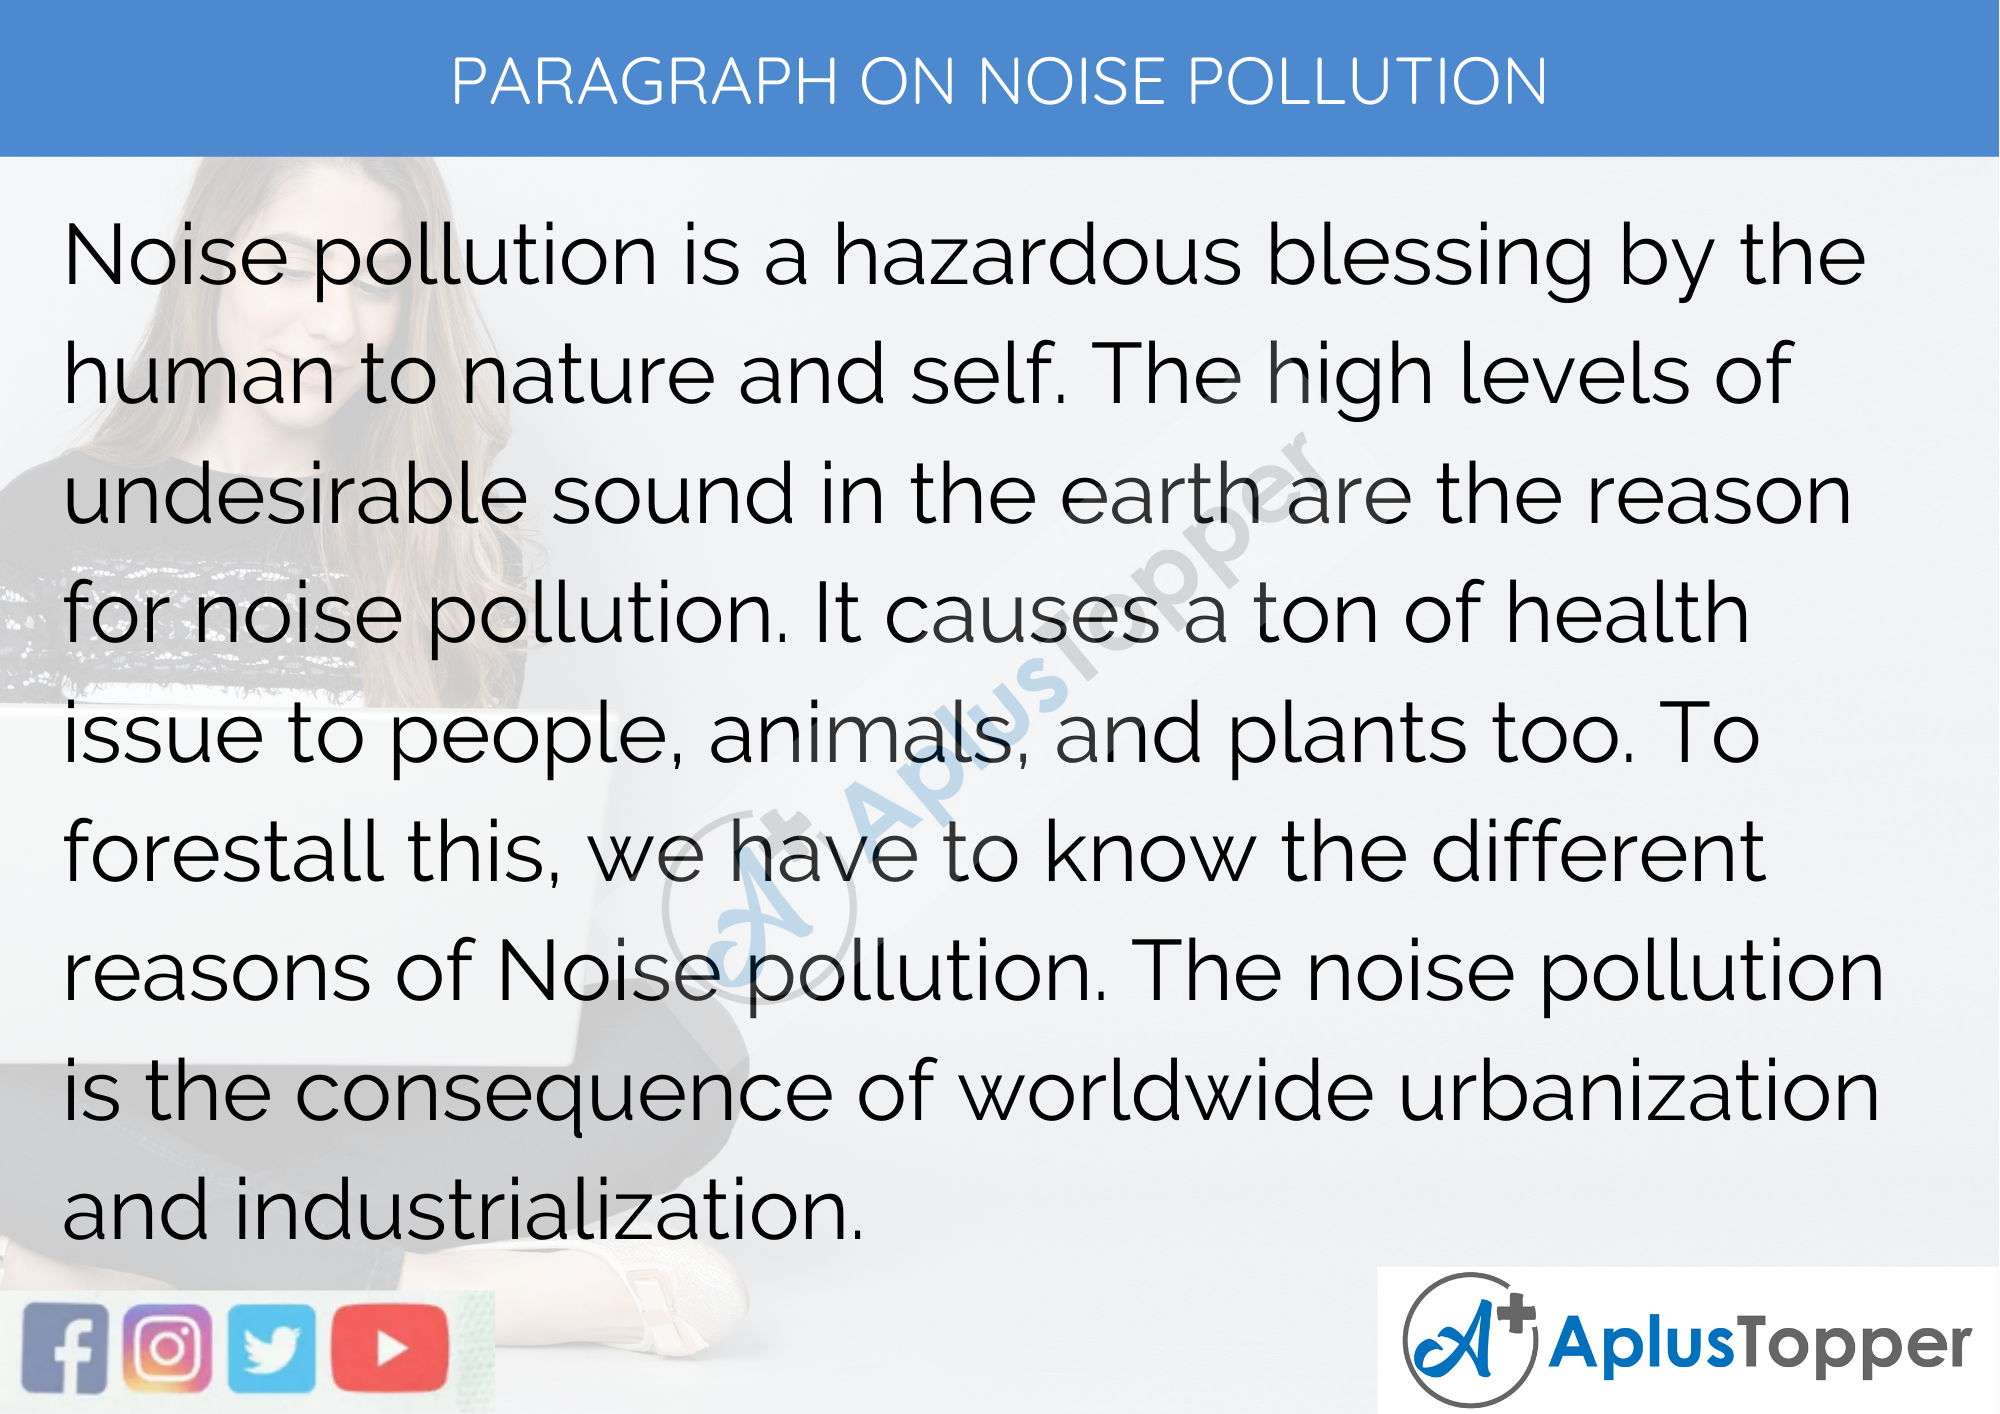 Paragraph On Noise Pollution - 250 to 300 Words for Classes 9, 10, 11, 12 And Competitive Exams Students